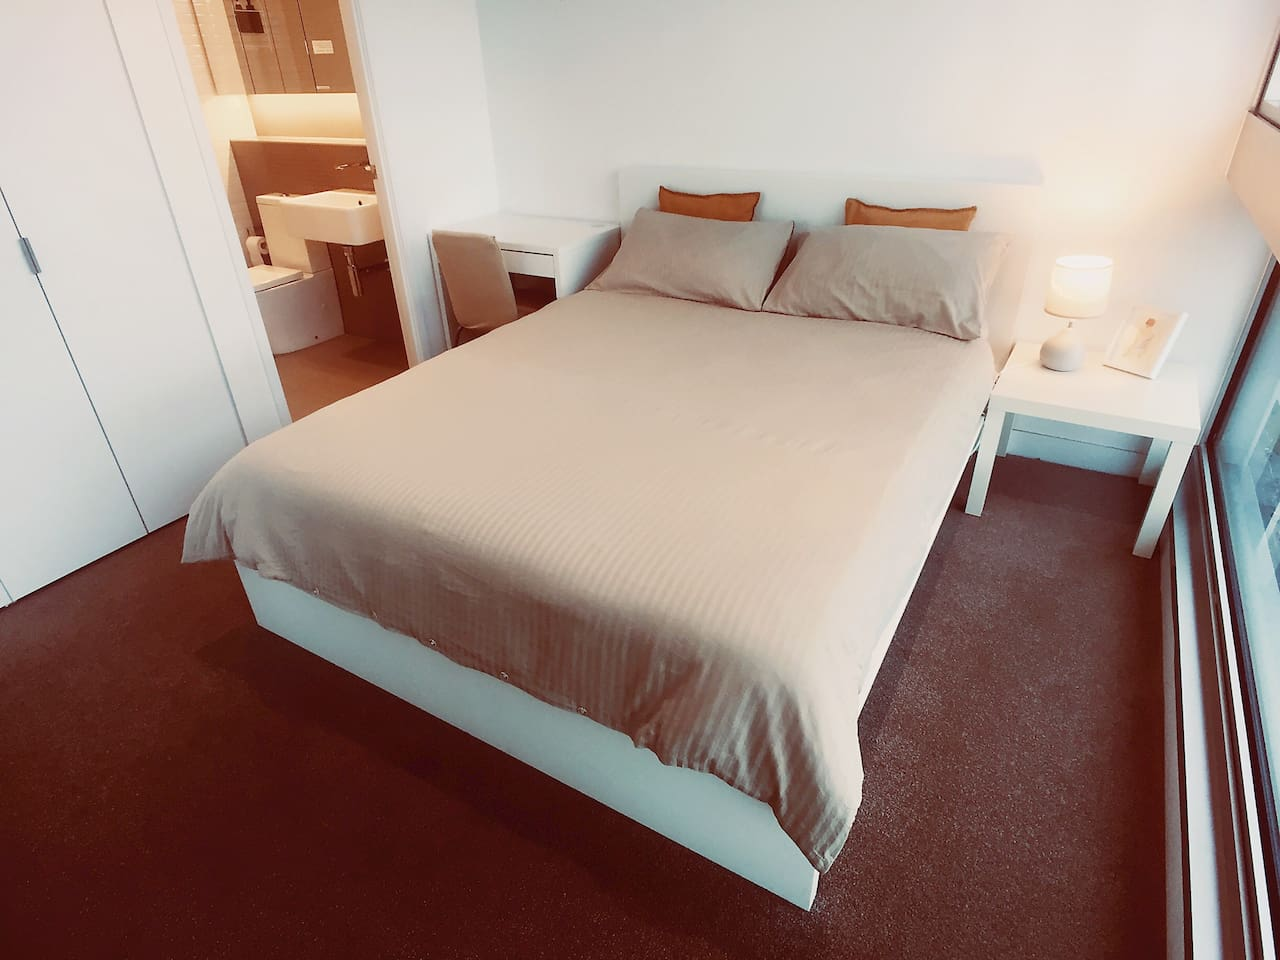 The bedroom has an en-suite bathroom.The mattress is very soft and comfortable.There are an electric blanket and a wool quilt on the bed, so it is warm in winter.